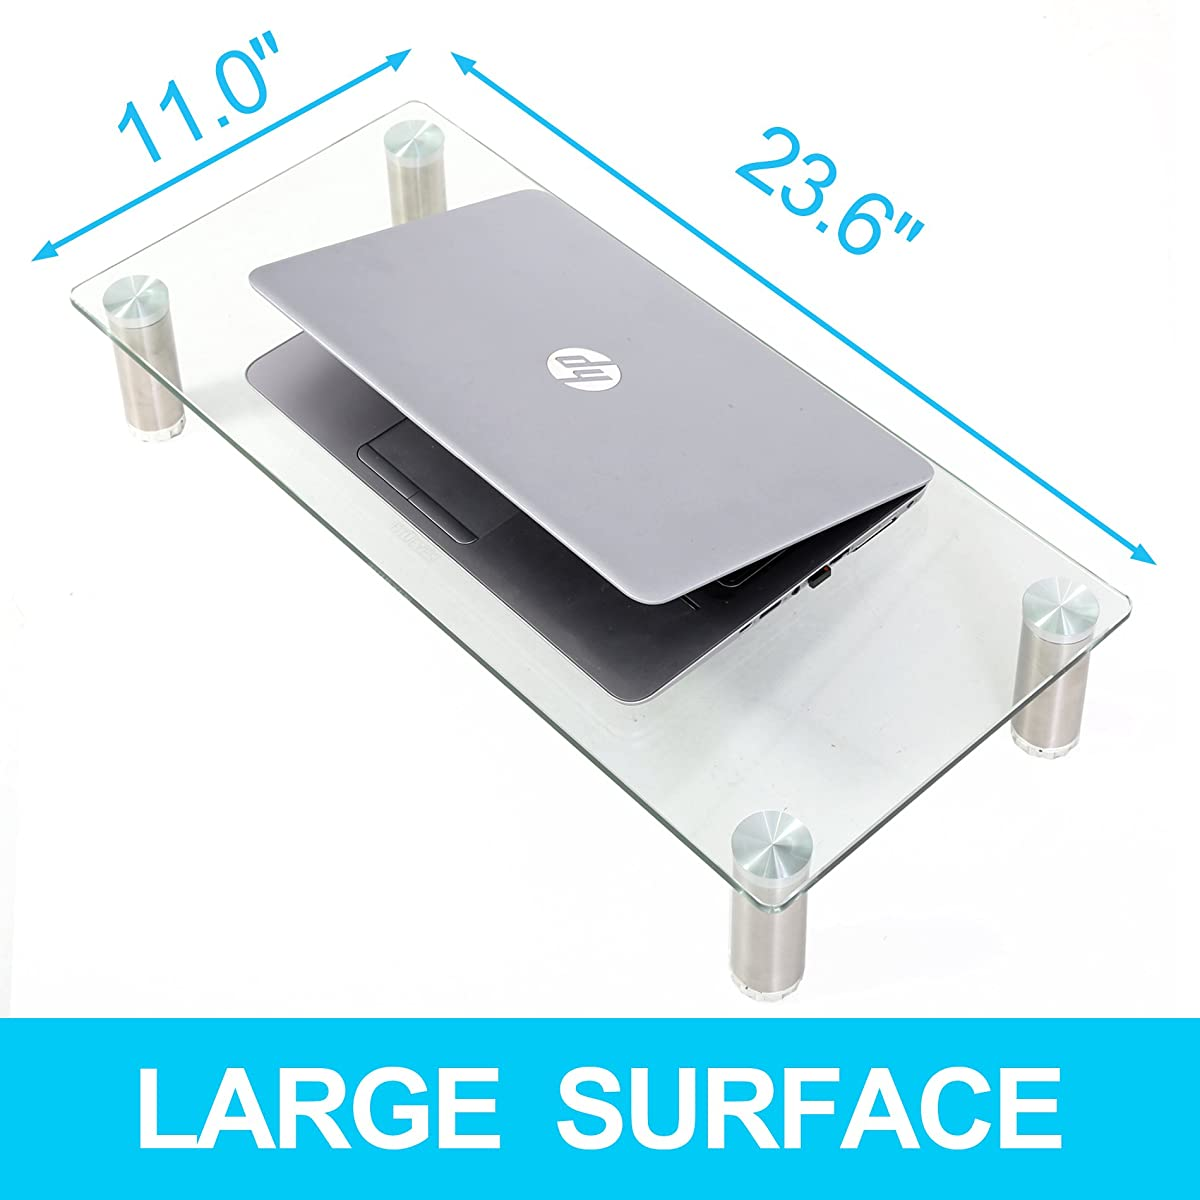 Fitueyes clear Computer Monitor Riser 4.7 High 23.6 Save Space Desktop Stand for Xbox One/component/flat Screen TV